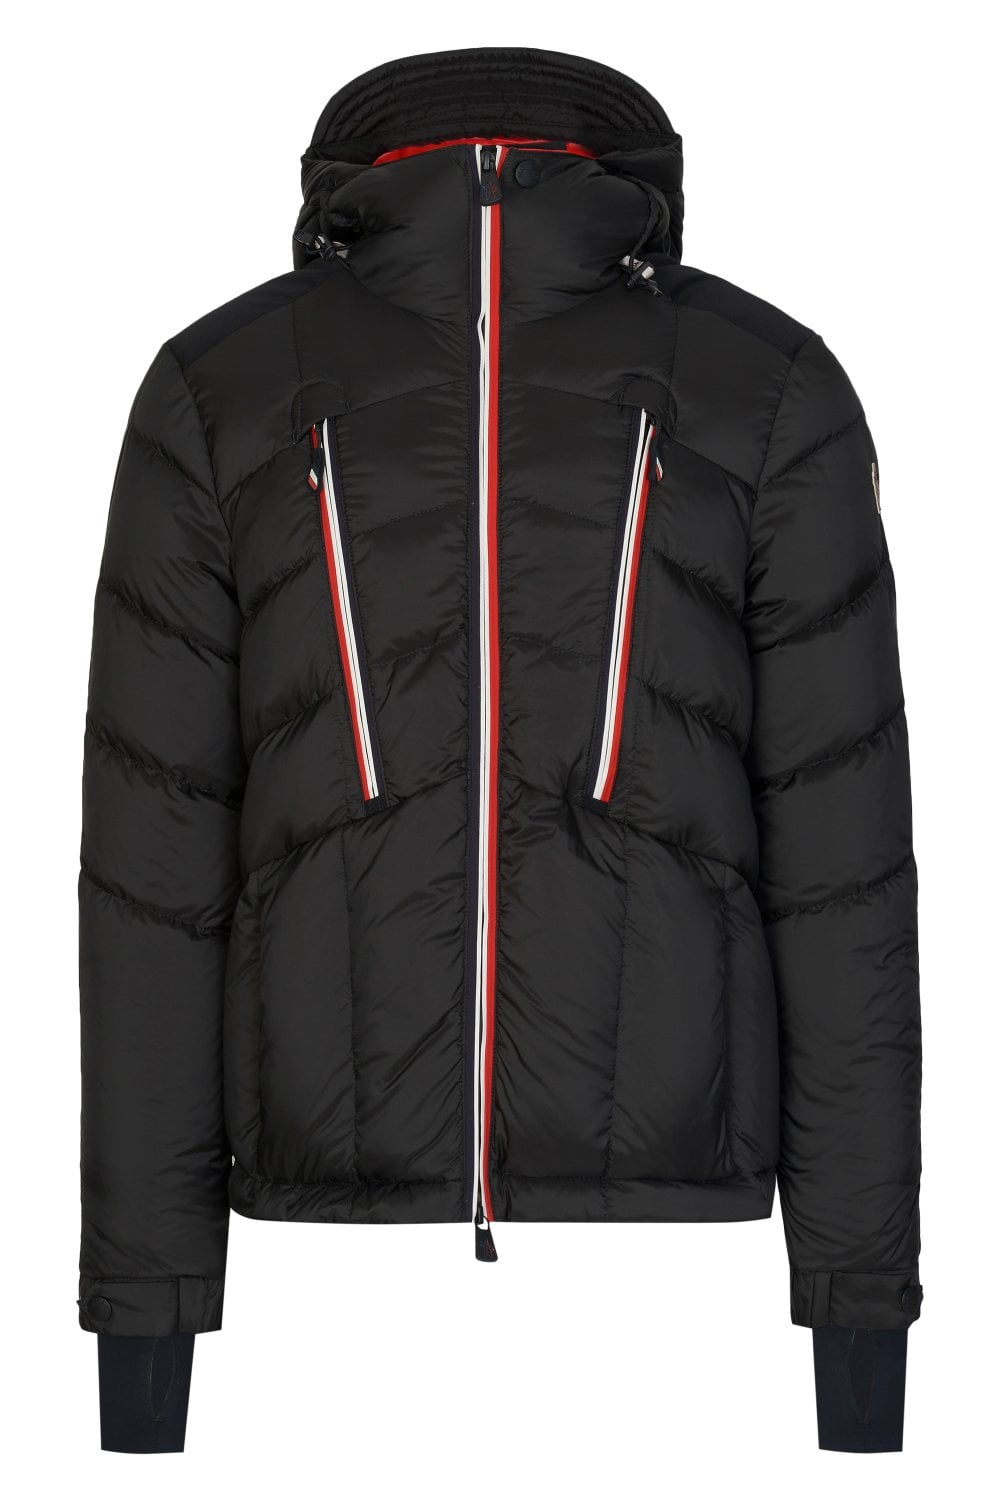 3be0effffb95 MONCLER Moncler Arnensee Quilted Jacket - Clothing from Circle ...